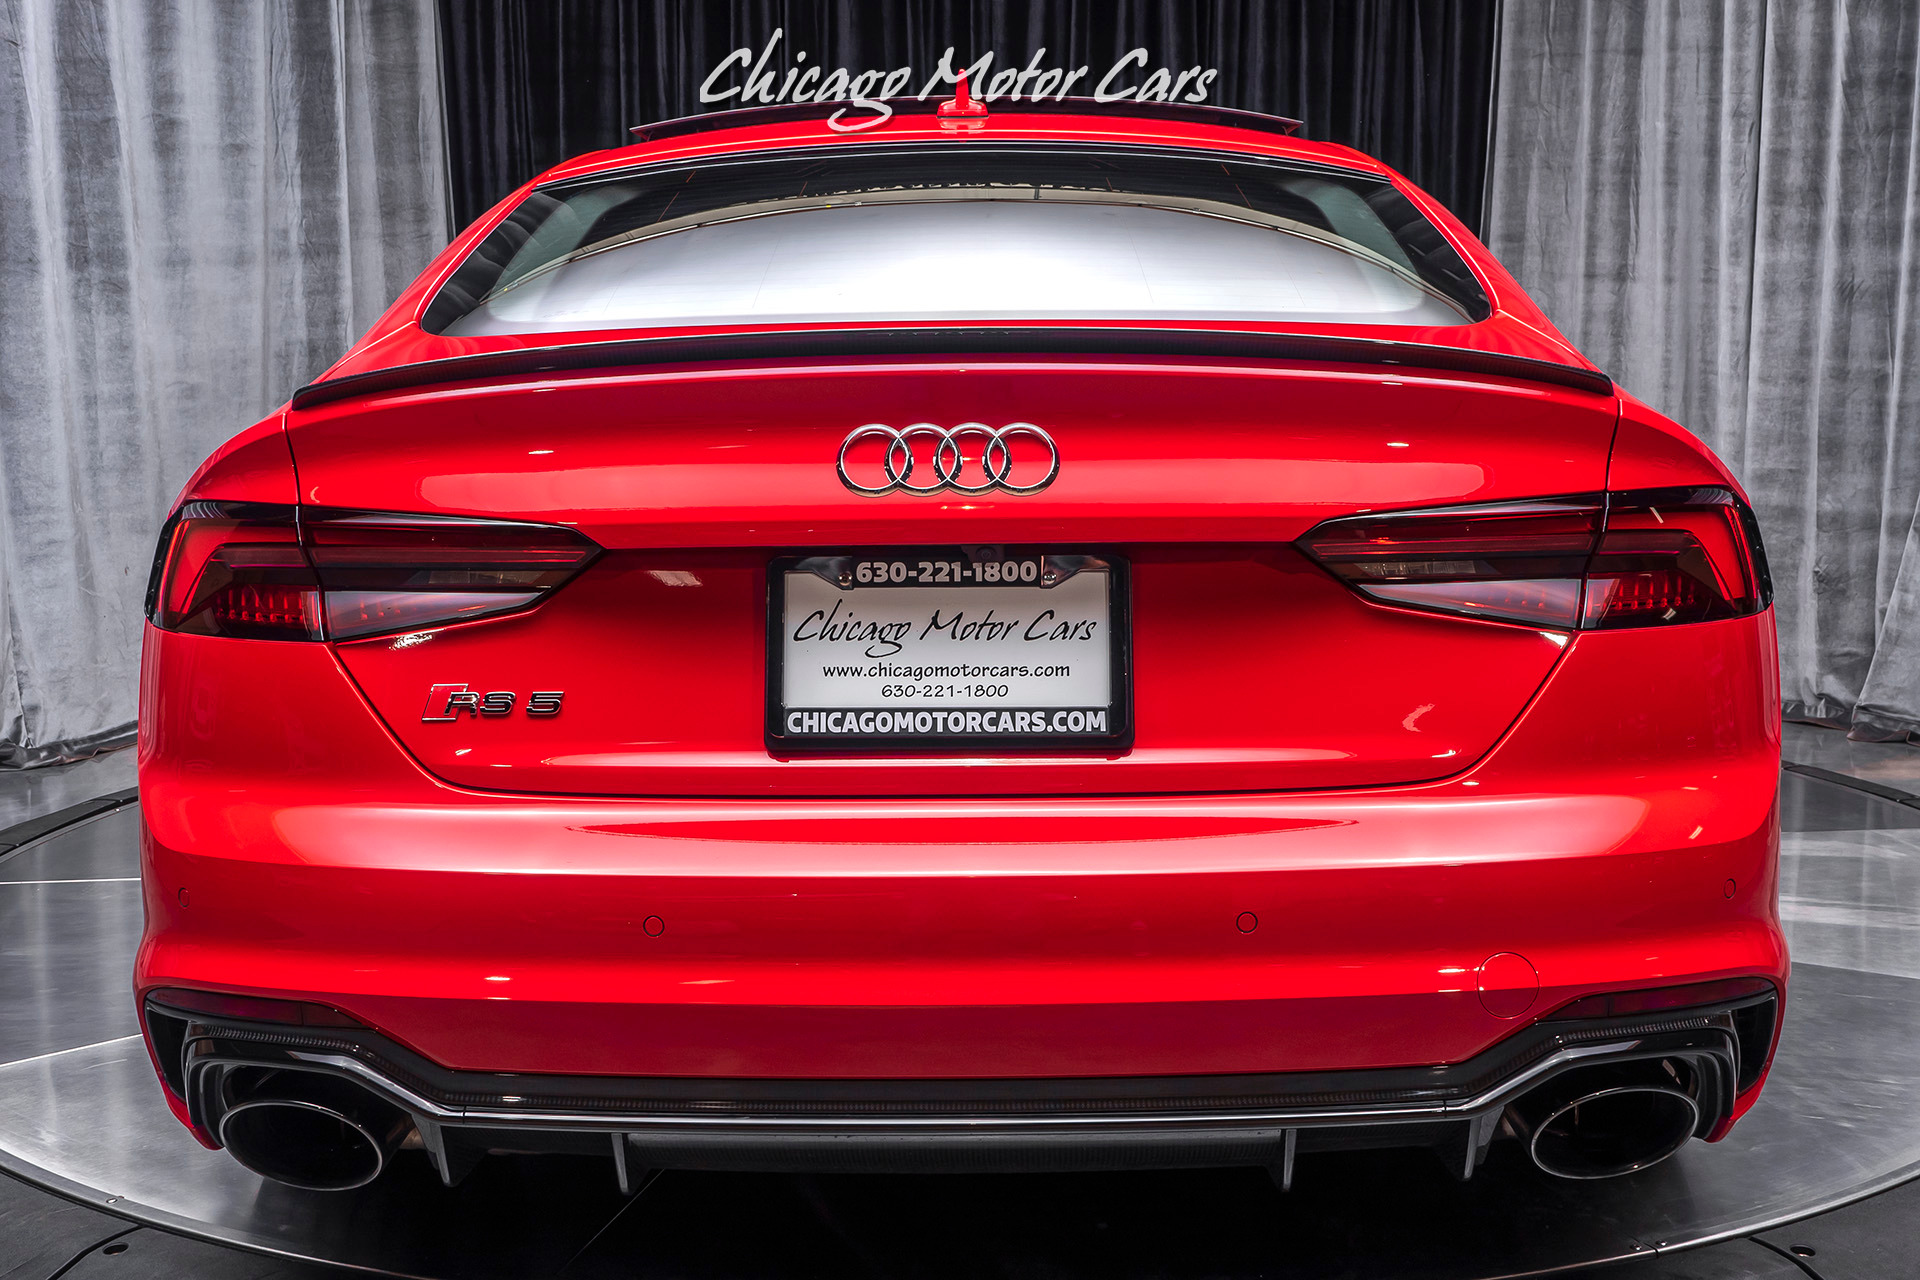 Used-2019-Audi-RS5-Sportback-29T-quattro-MSRP-97K-DYNAMIC-PLUS-PACKAGE